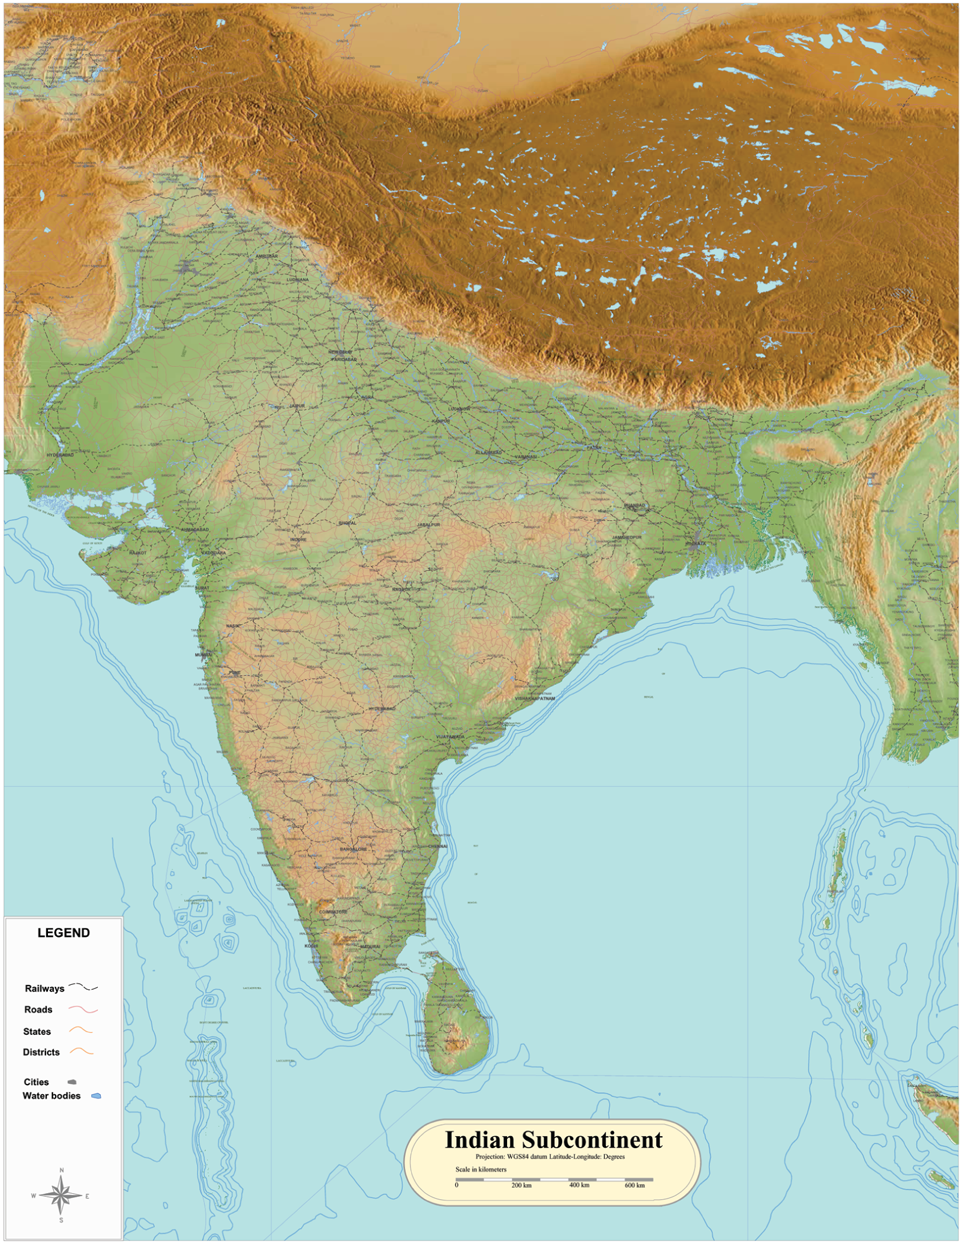 Indian subcontinent wall map on pakistan map, bombay presidency map, egypt map, bangladesh map, india map, indian ocean, south asia, indian independence movement map, south america map, british raj, alps mountains map, dravidian languages, mongolia map, indus valley civilization, south india, union territory map, indus river, indus river map, taiwan map, middle eastern map, delhi map, caribbean map, middle east map, punjab region, indian diaspora map, indian arabian sea map, asia map, scandinavia map, british east india company,